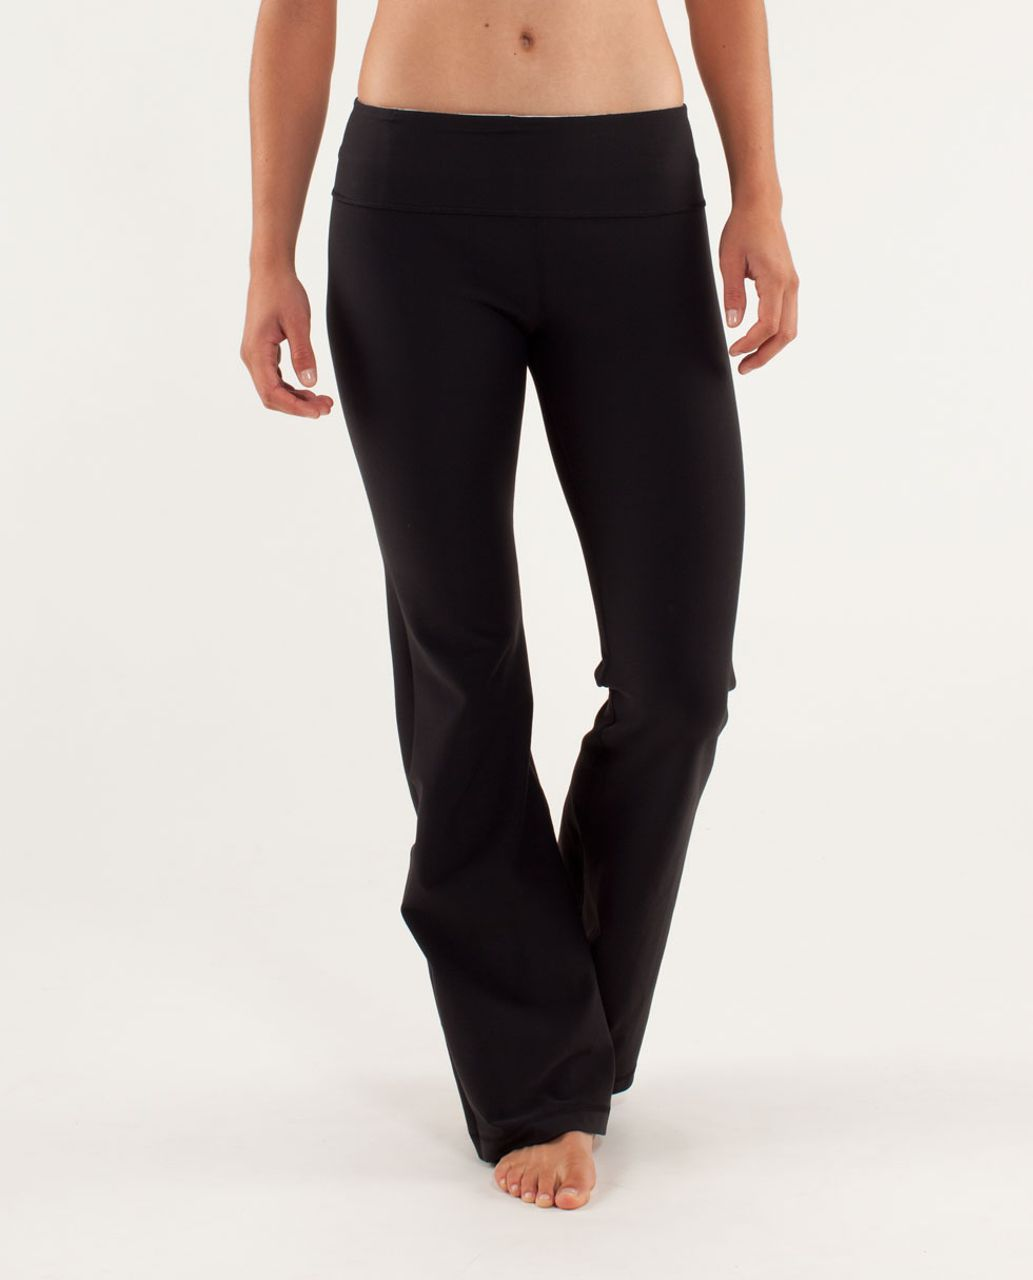 Lululemon Groove Pant (Regular) - Black / Milky Way Multi / Pigment Blue